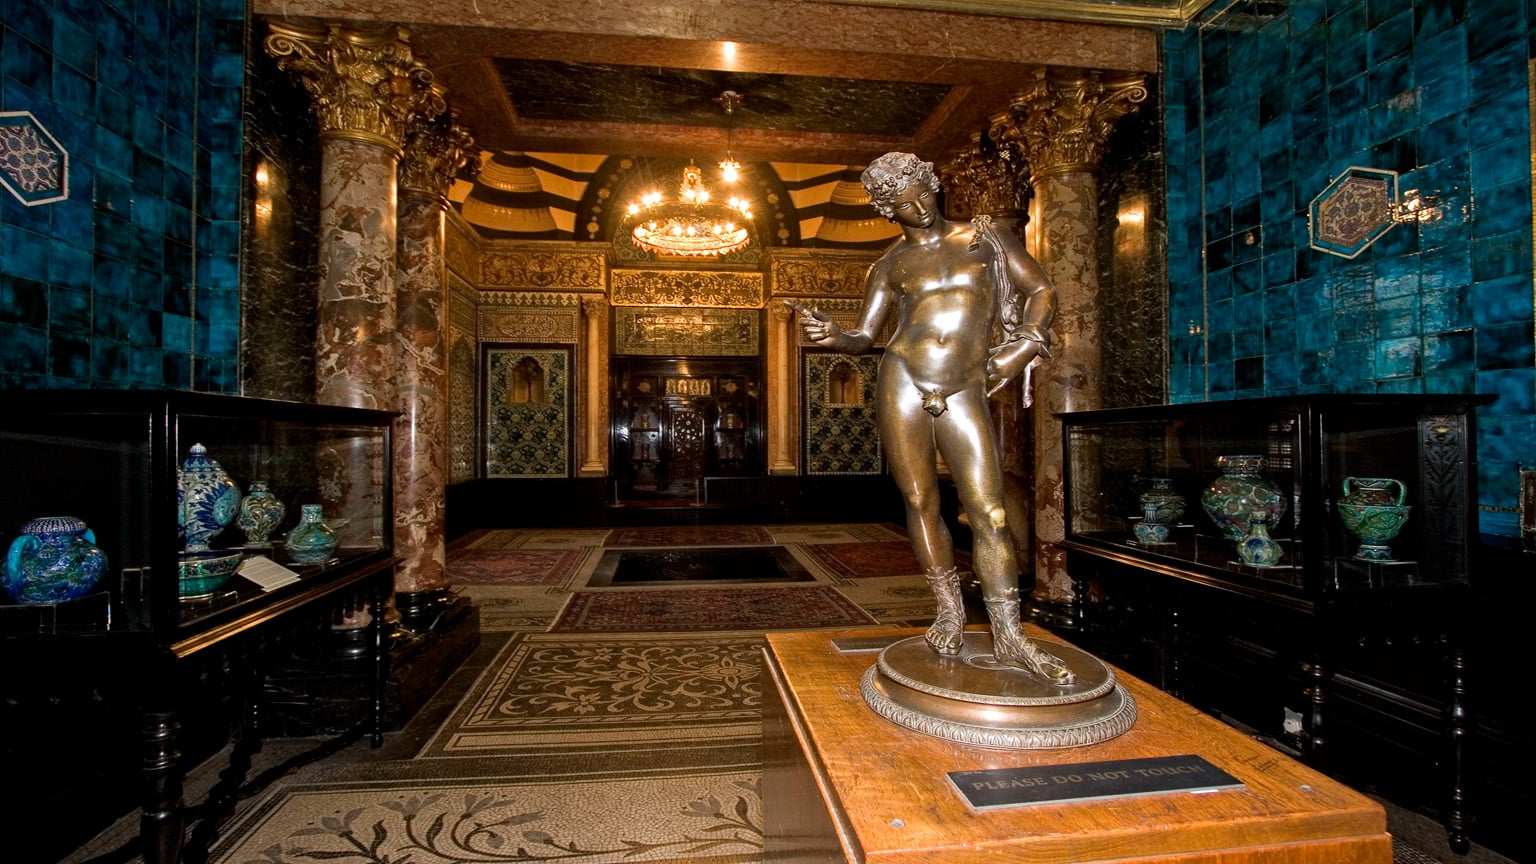 Phoe Travels to Leighton House Museum, London